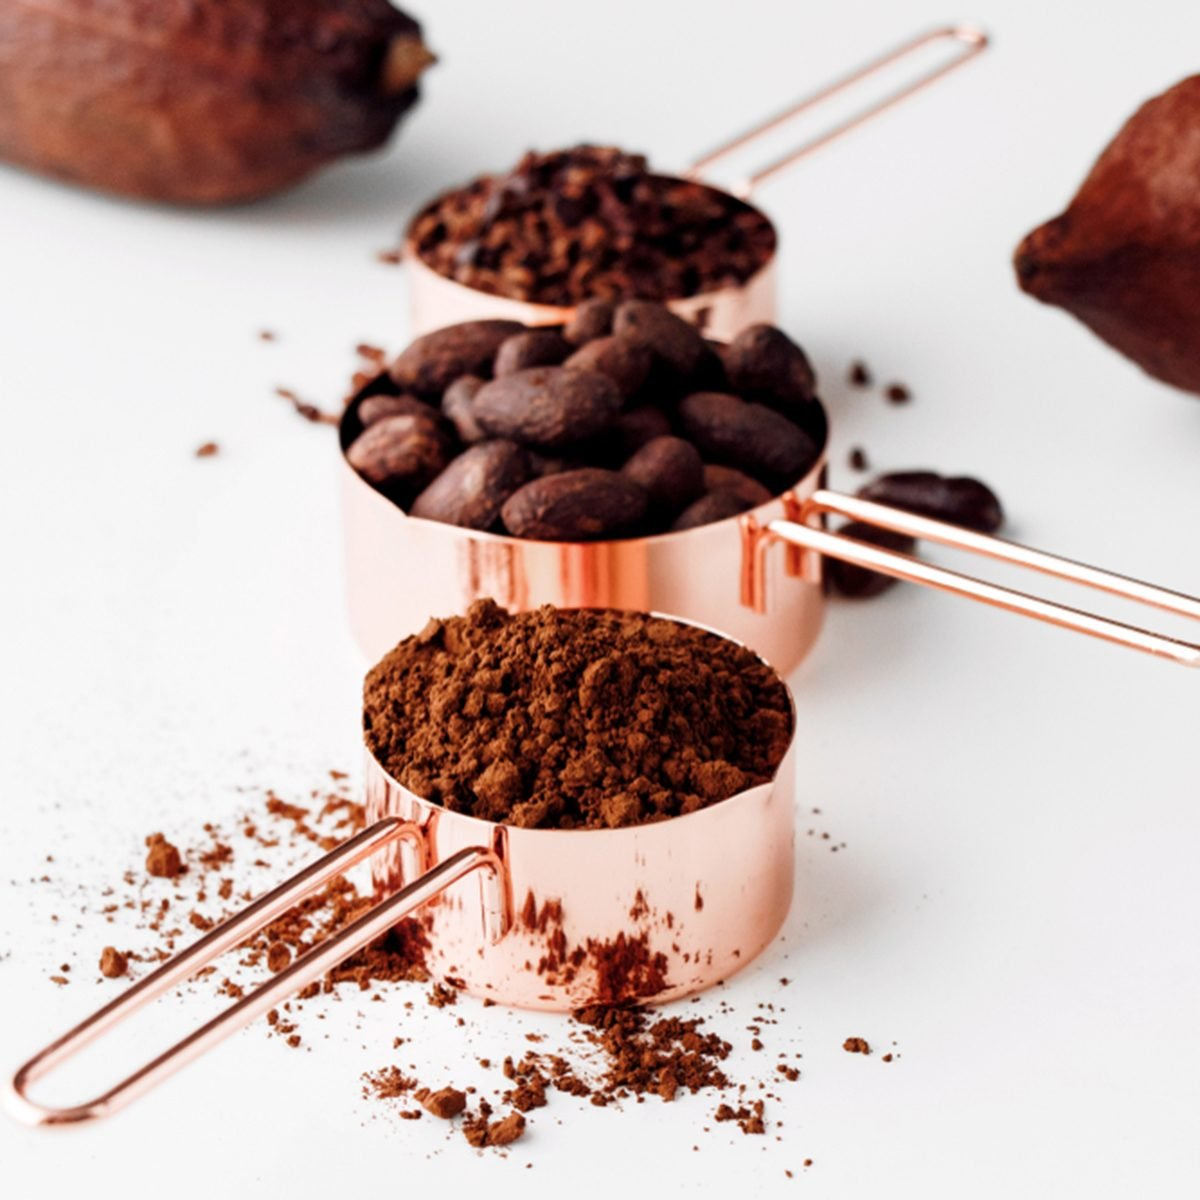 Rose gold measuring cups of cocoa beans, cacao nips, cocoa powder and cocoa pods on a white background